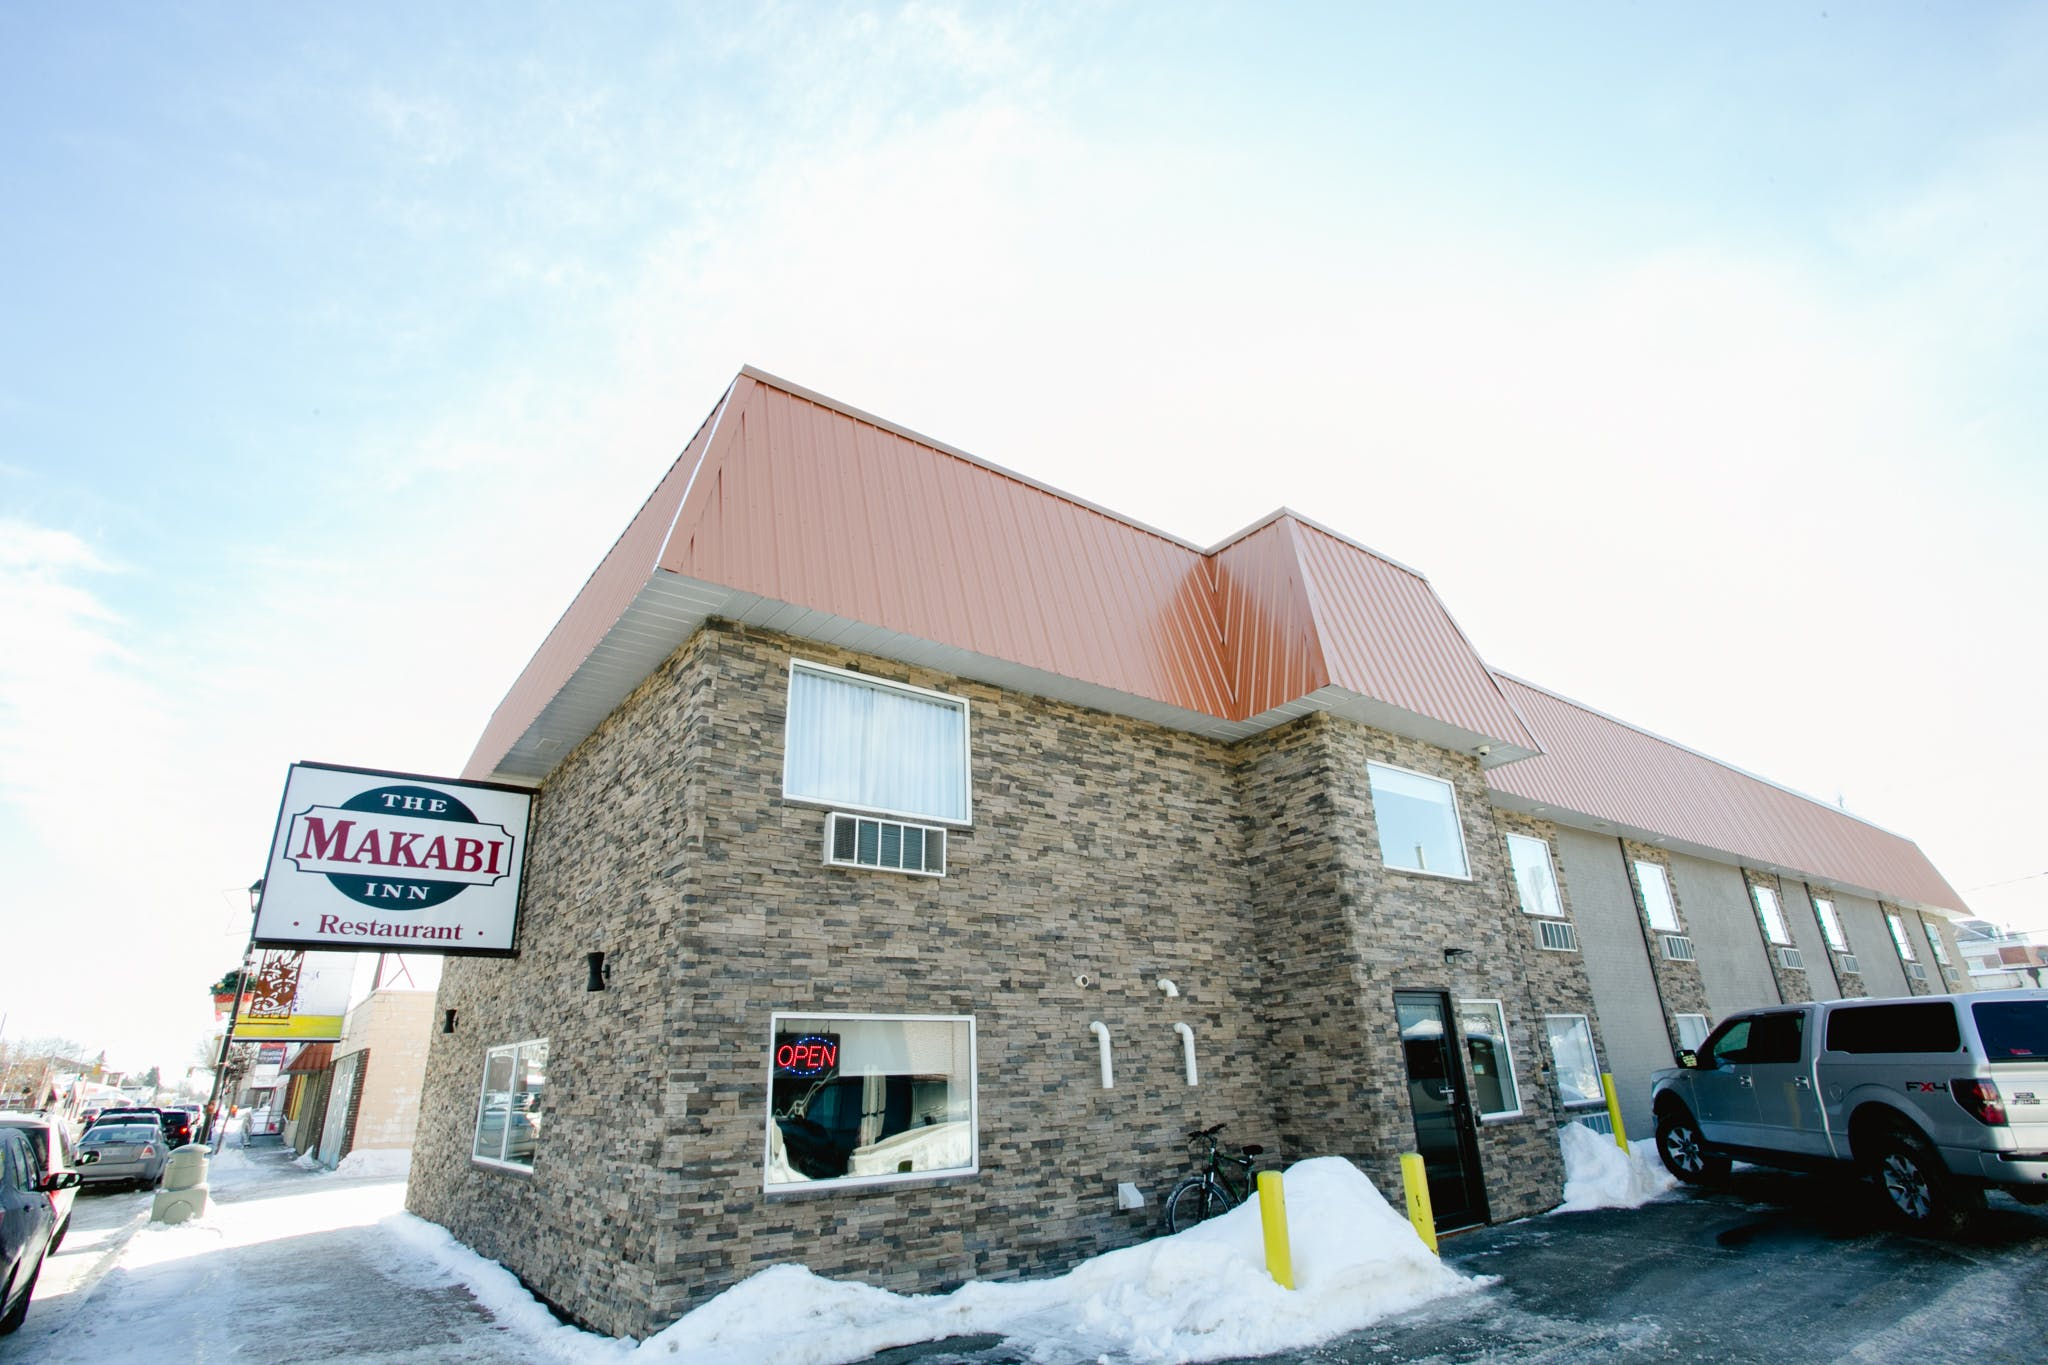 hotel front entrance. 325 Scott St, Fort Frances, ON P9A 1H1, Canada Phone: +1 807-274-5500